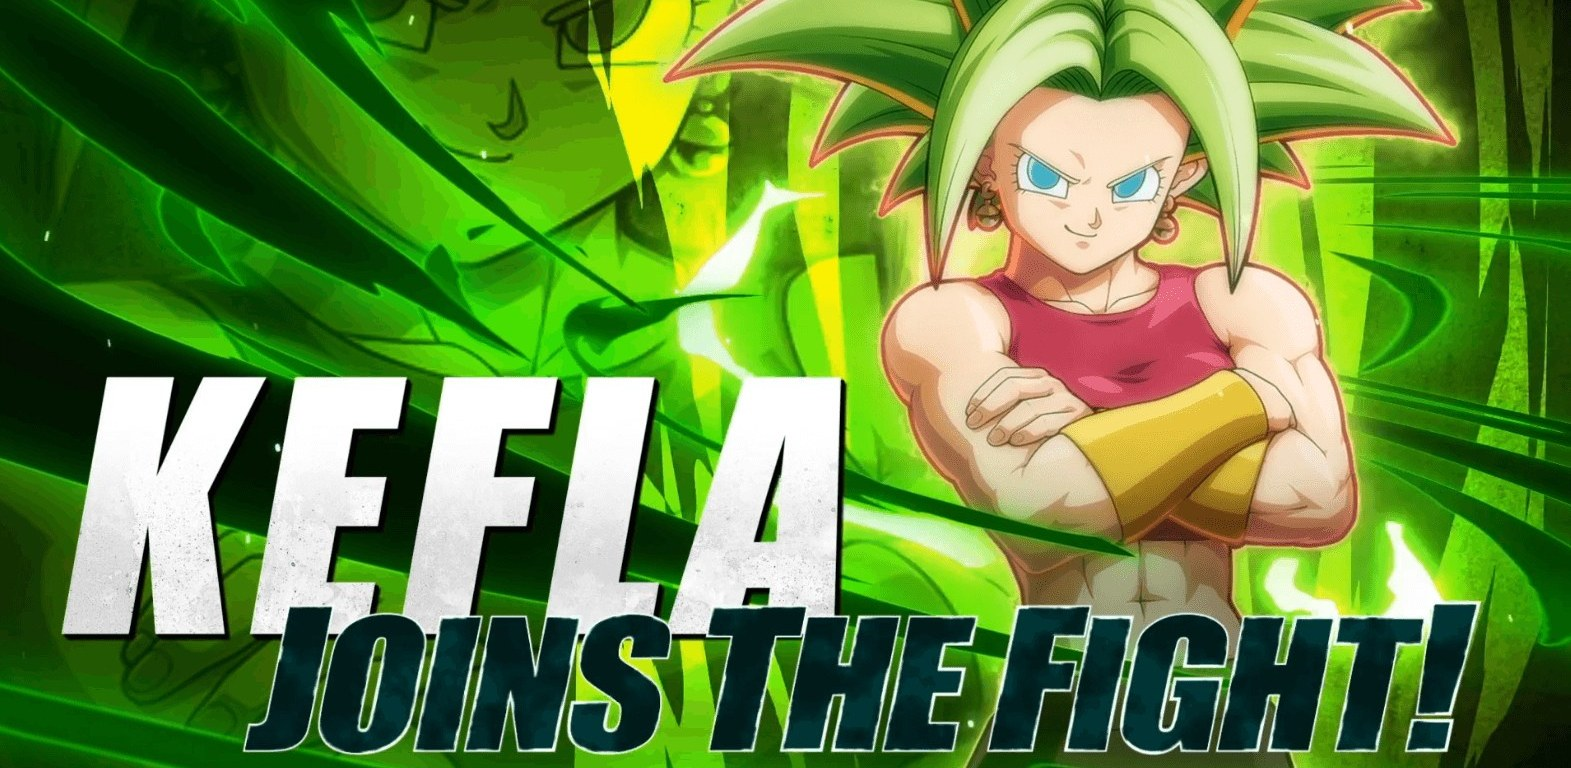 Bandai Namco Entertainment Europe recently streamed gameplay footage of Kefla, the latest DLC character to be arriving for Dragon Ball FighterZ.